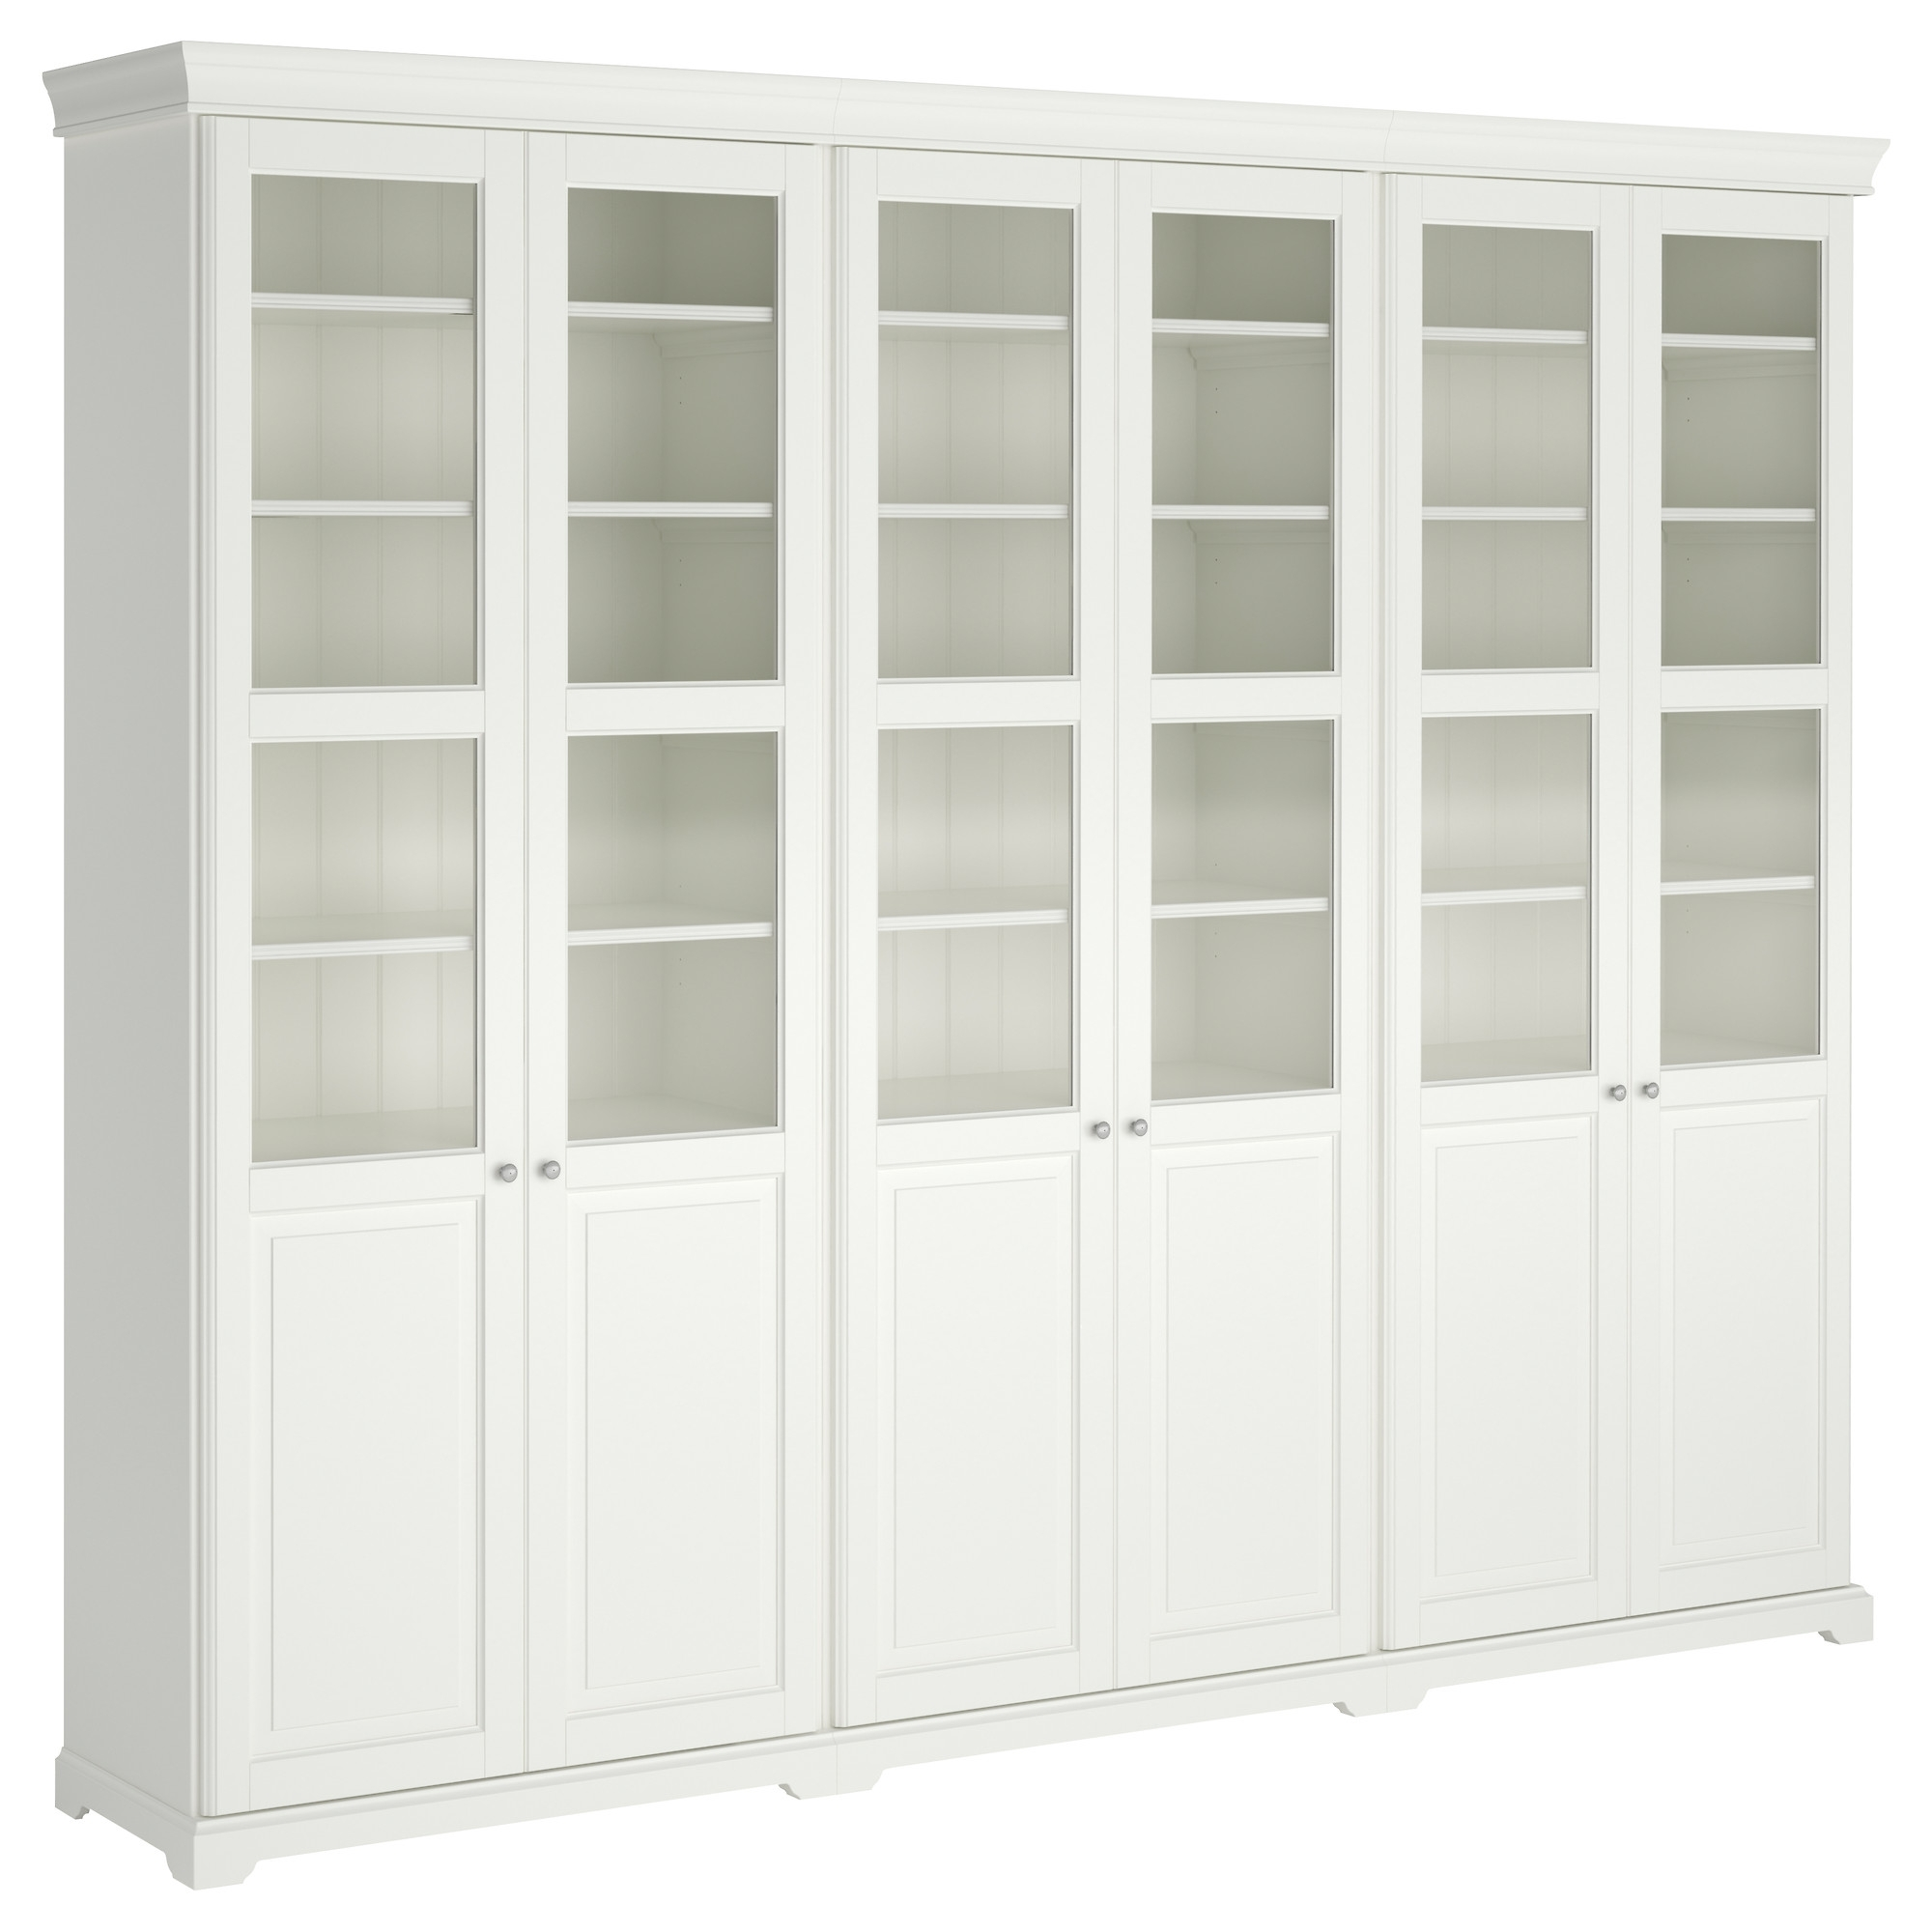 Liatorp Storage Combination With Doors – Ikea With Regard To Well Known Storage Bookcases (View 15 of 15)